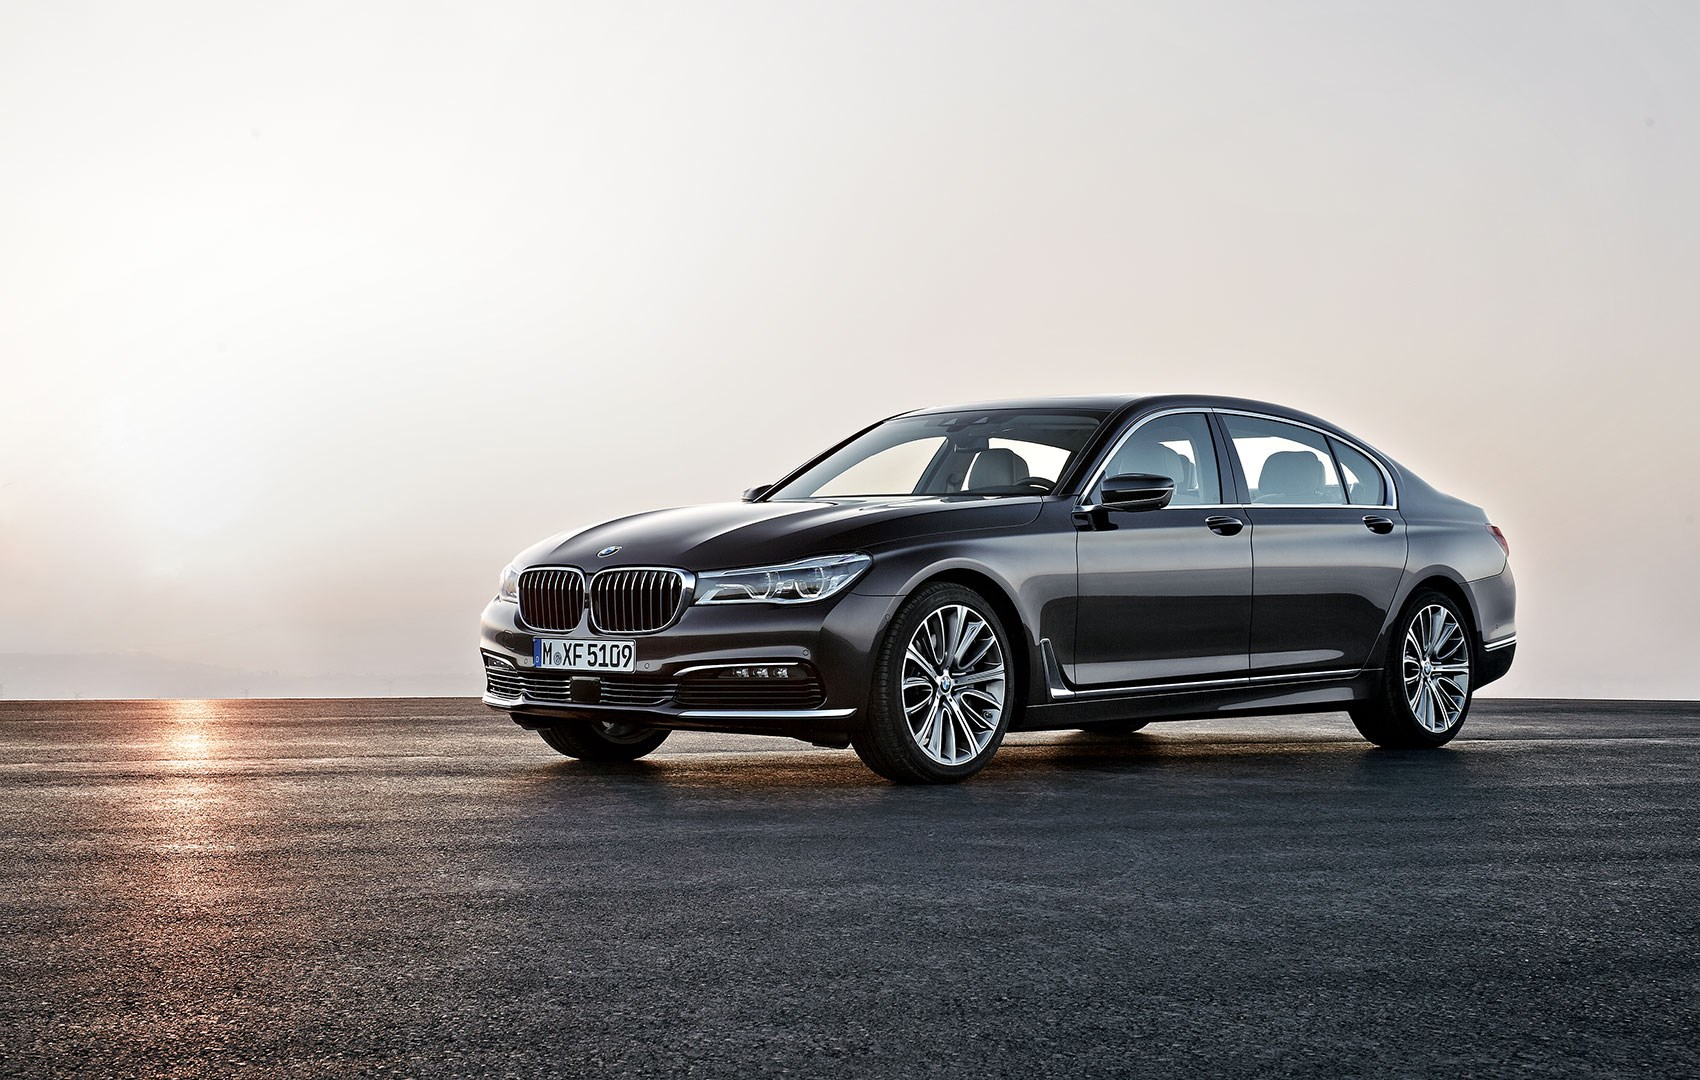 An Evolutionary Design The New 2015 BMW 7 Series